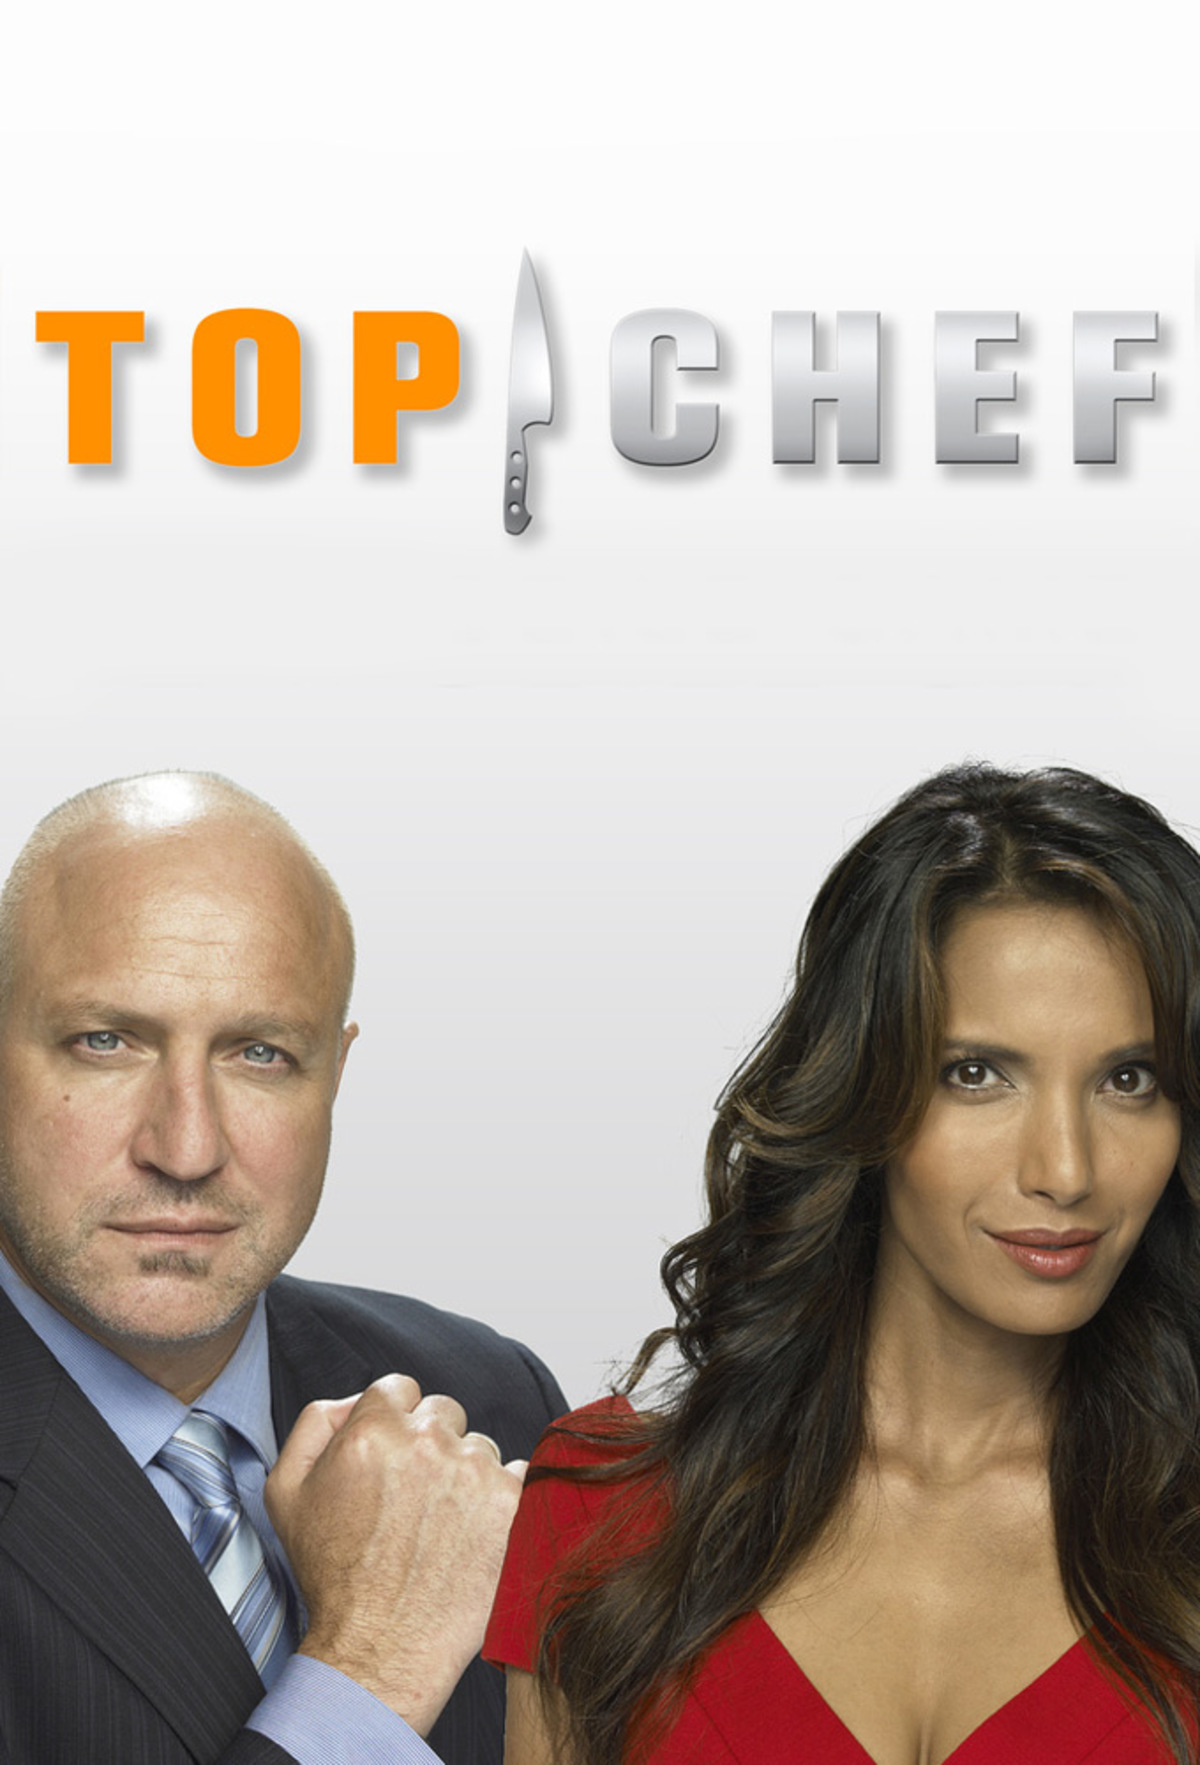 Top Chef - Season 17 Episode 10